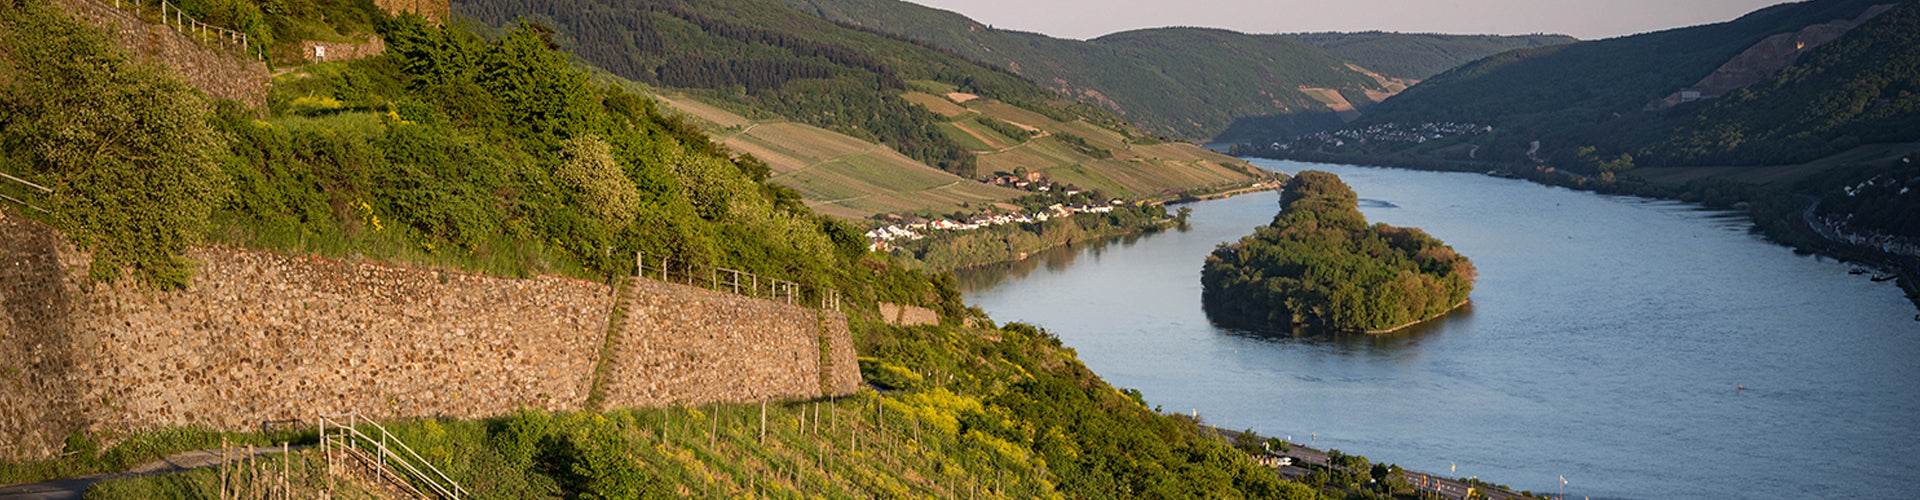 Eva Fricke Vineyards on the Rheingau in Germany